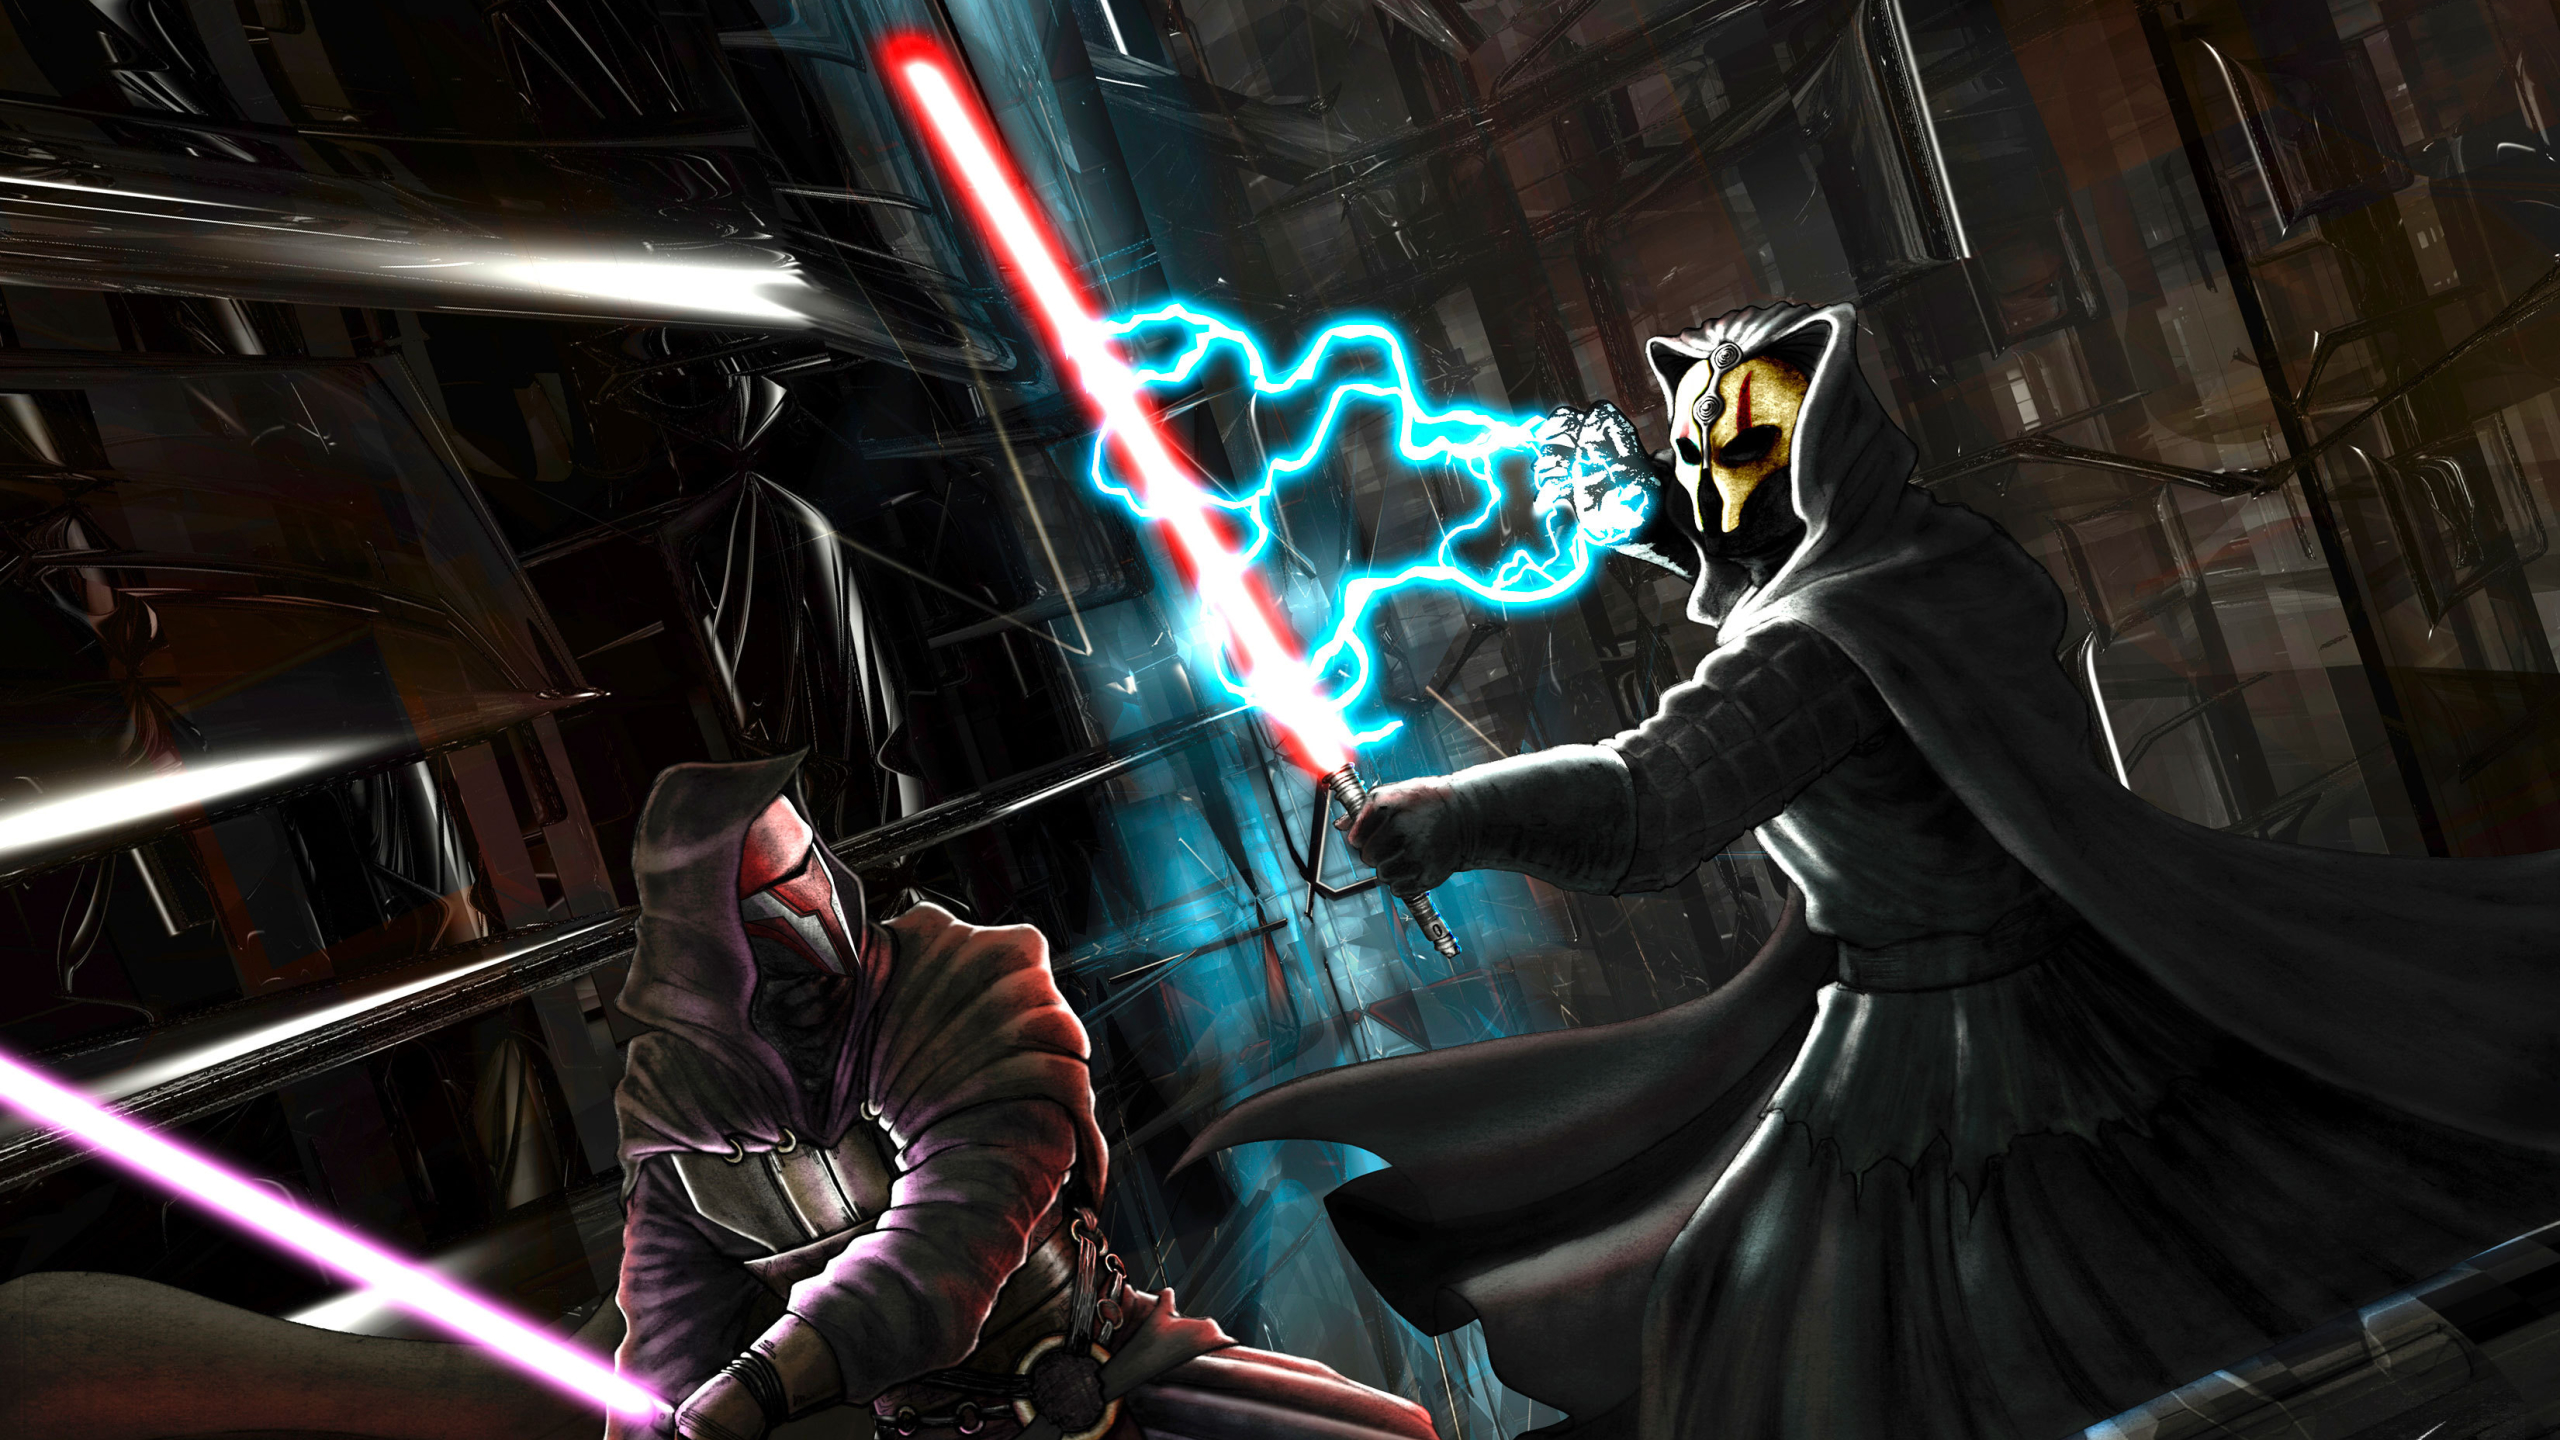 2560x1440 Knights Of The Old Republic Darth Vs Revan 1440p Resolution Wallpaper Hd Games 4k Wallpapers Images Photos And Background